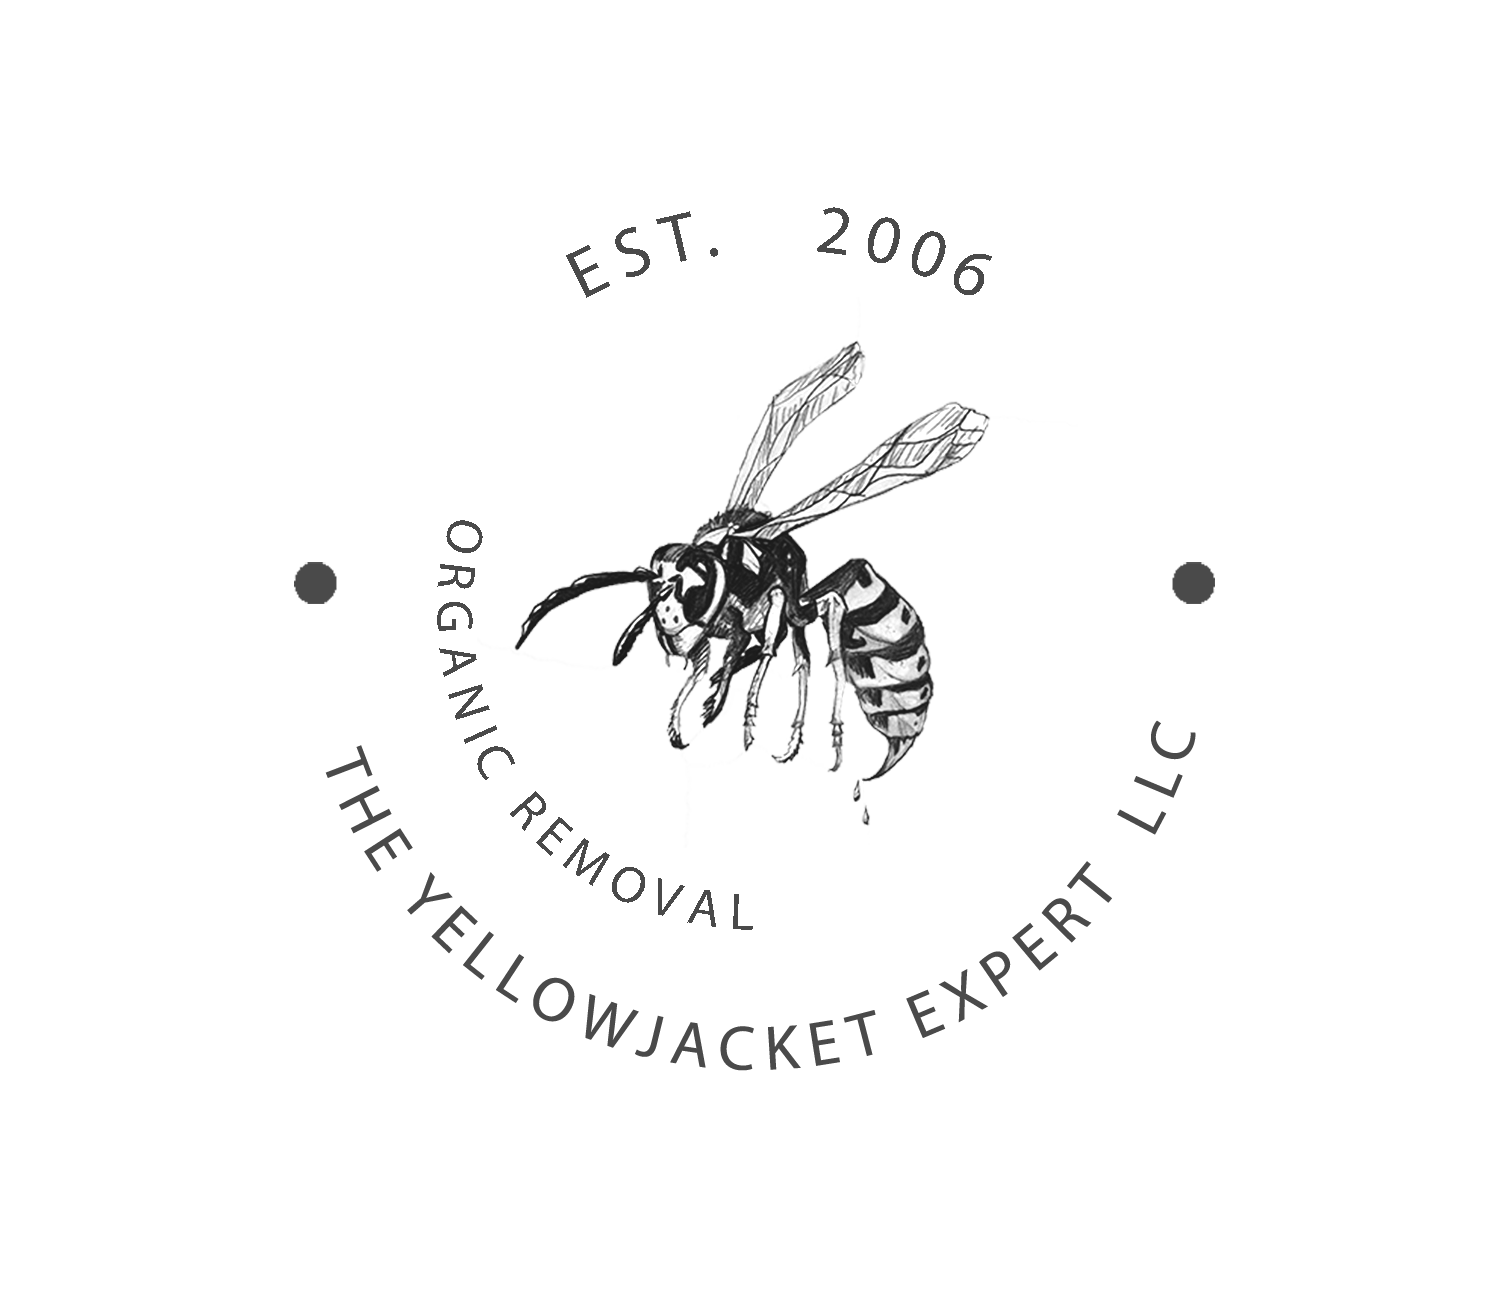 The YellowJacket Expert LLC